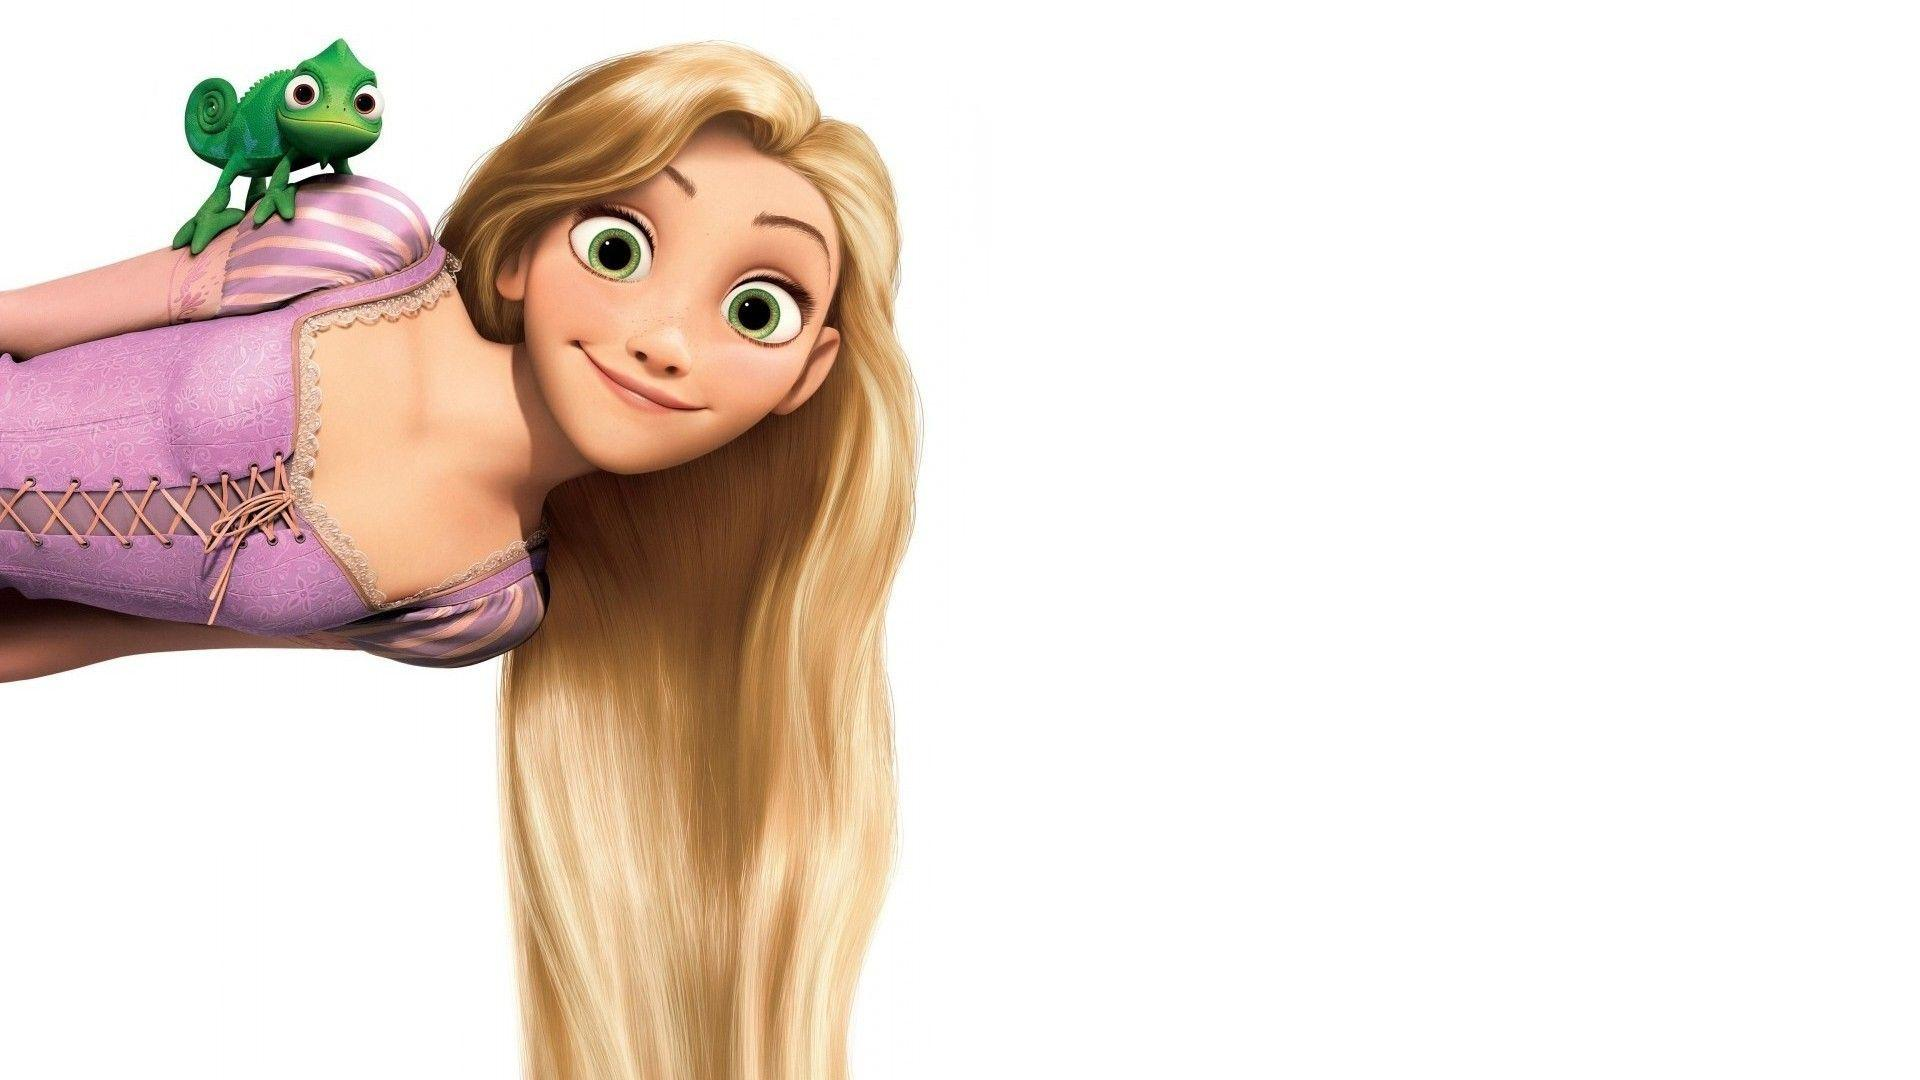 Pascal and Rapunzel Wallpaper #